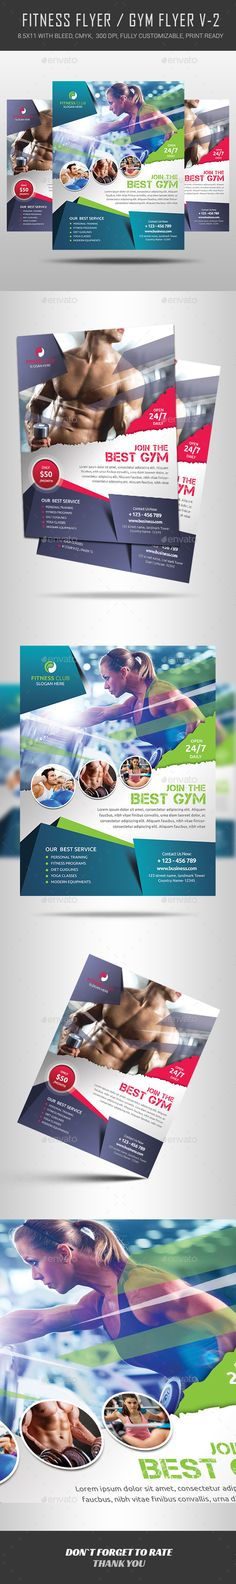 Gym Fitness Guideline Brochure   Fitness Brochure